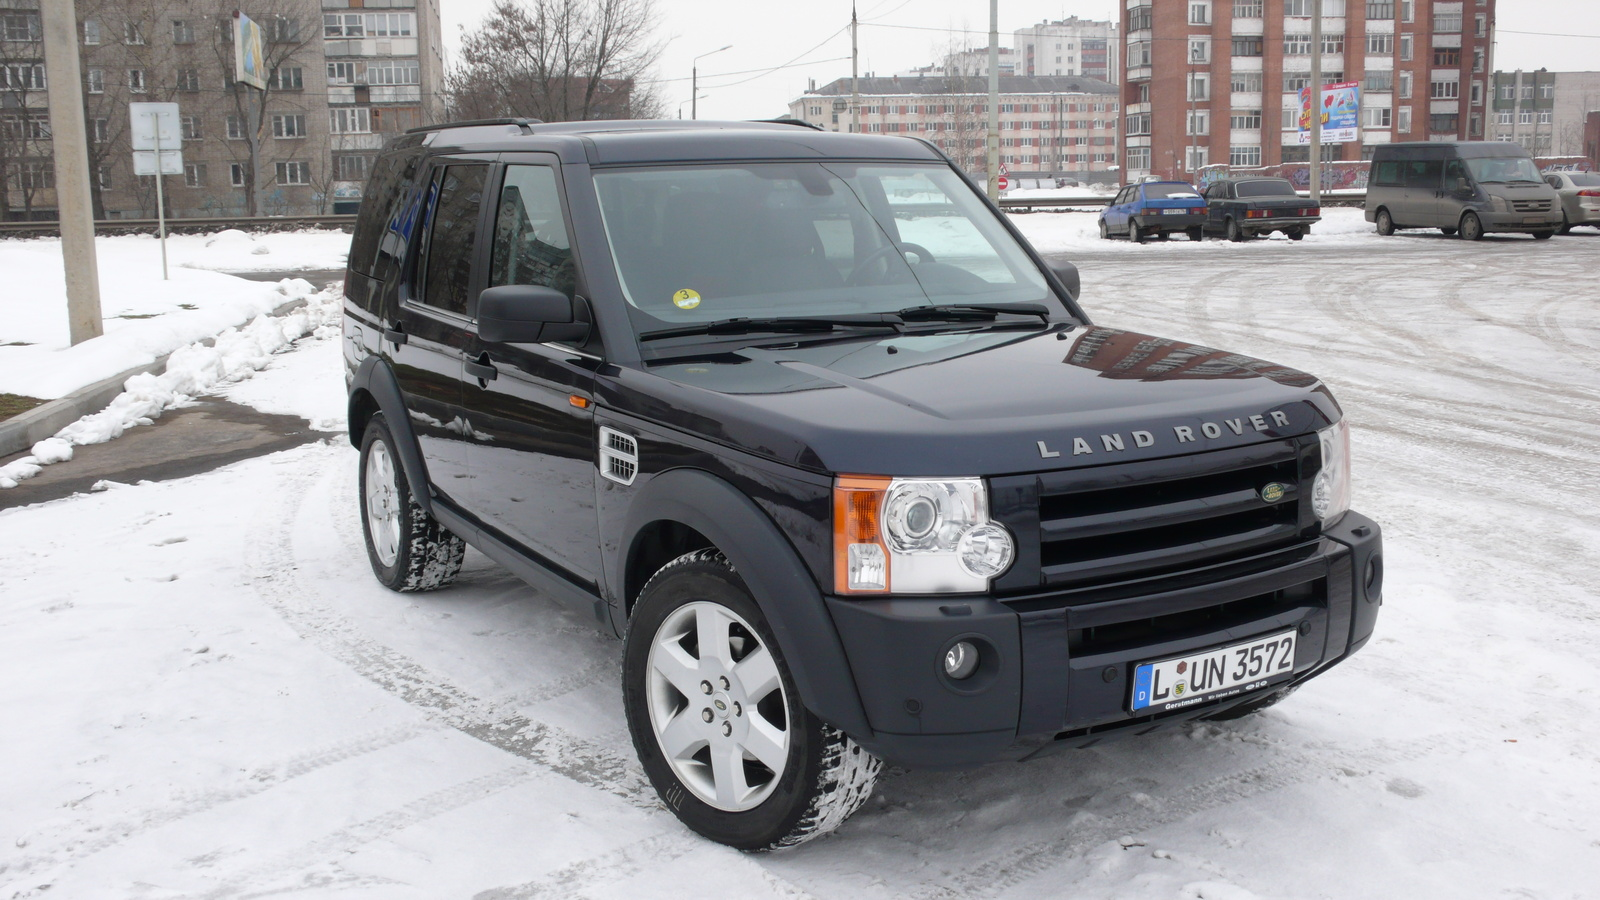 Land Rover LR3 2007: Review, Amazing Pictures and Images – Look at